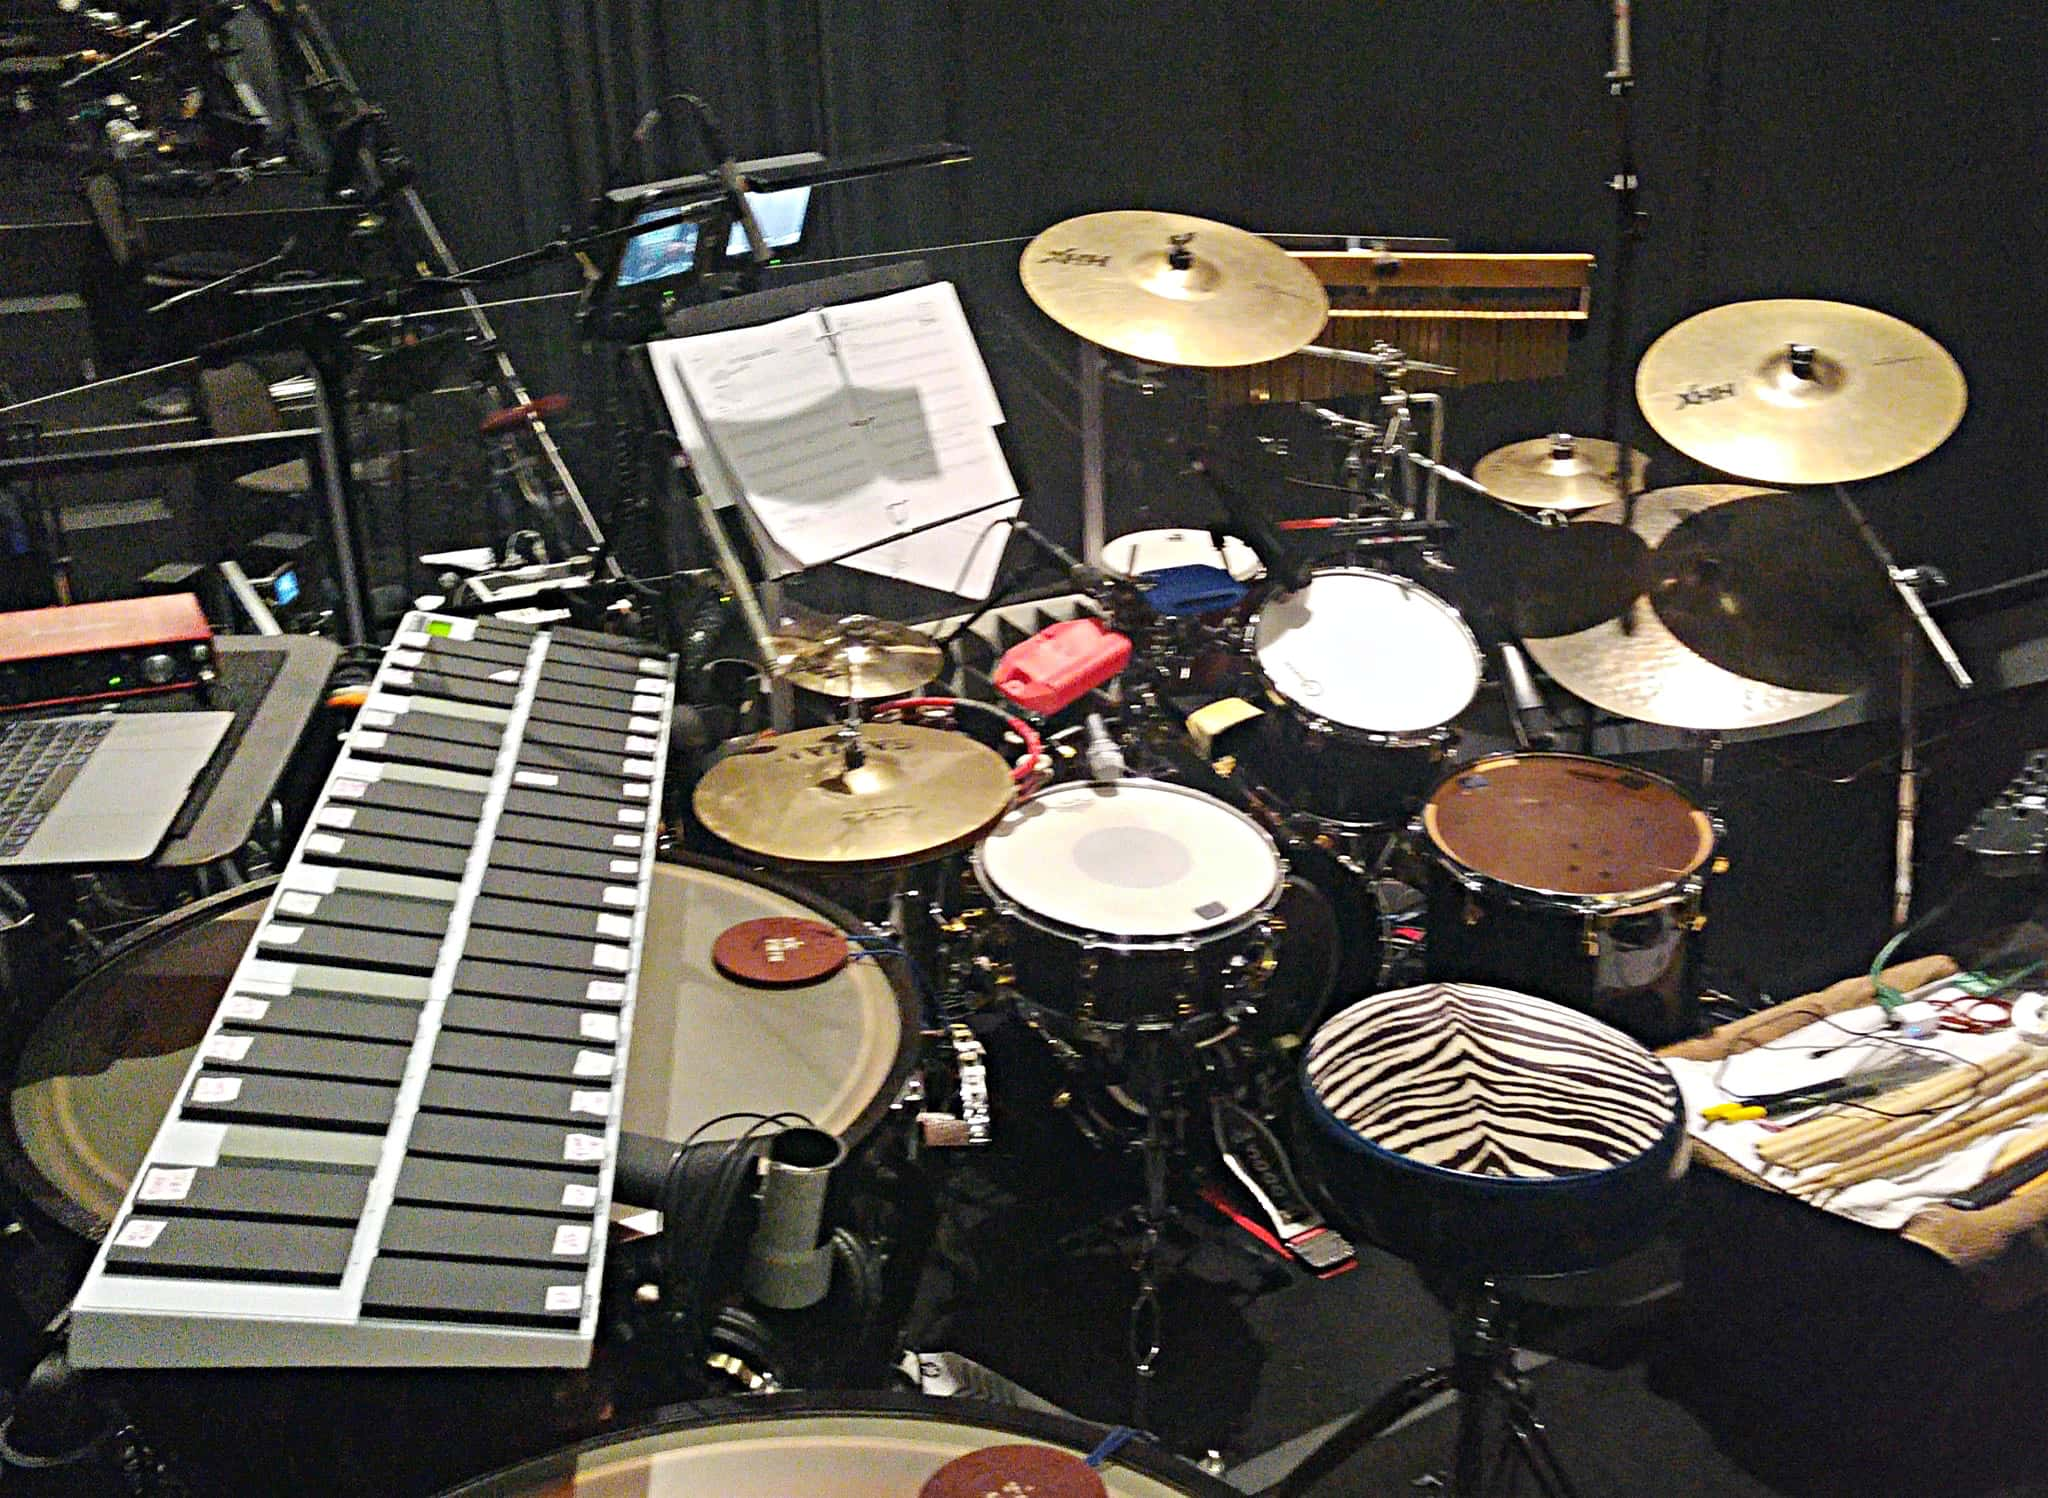 Kory Andry's setup for Guys and Dolls at the Guthrie Theater in Minneapolis, Minnesota.